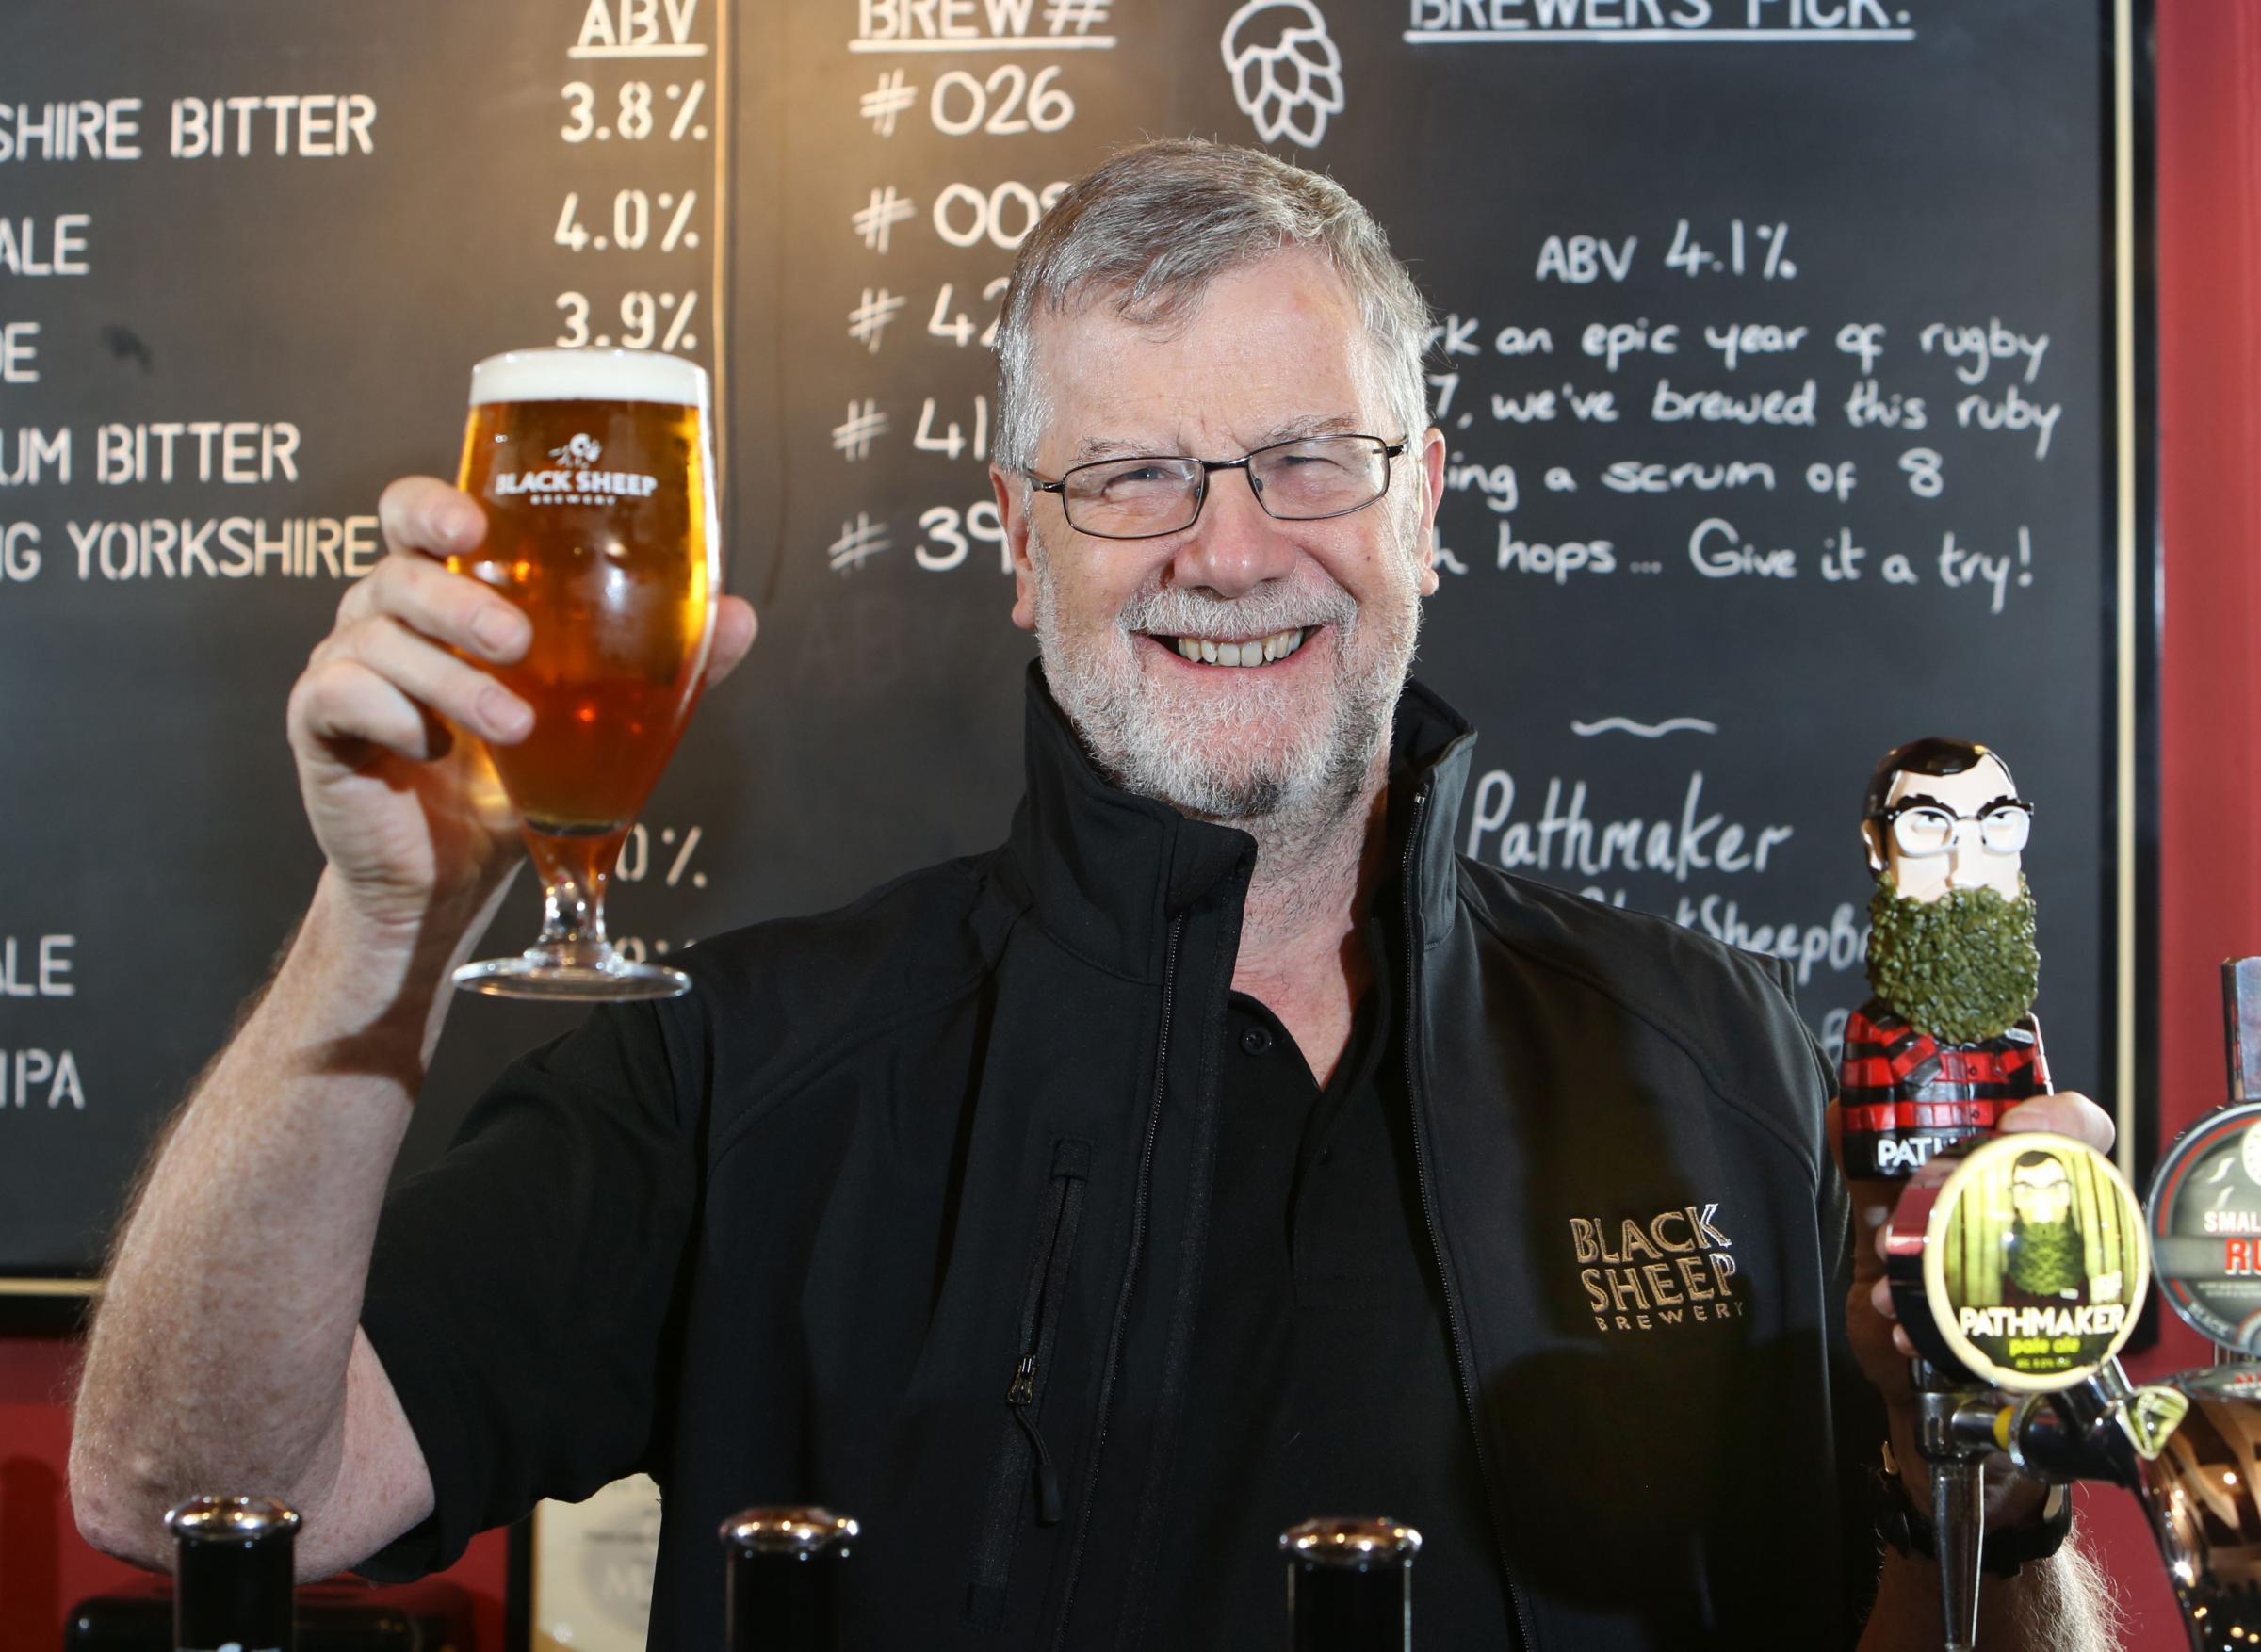 SUCCESS: Black Sheep Brewery founder Paul Theakston raises a glass to Pathmaker being awarded four stars at The Beer Awards 2017